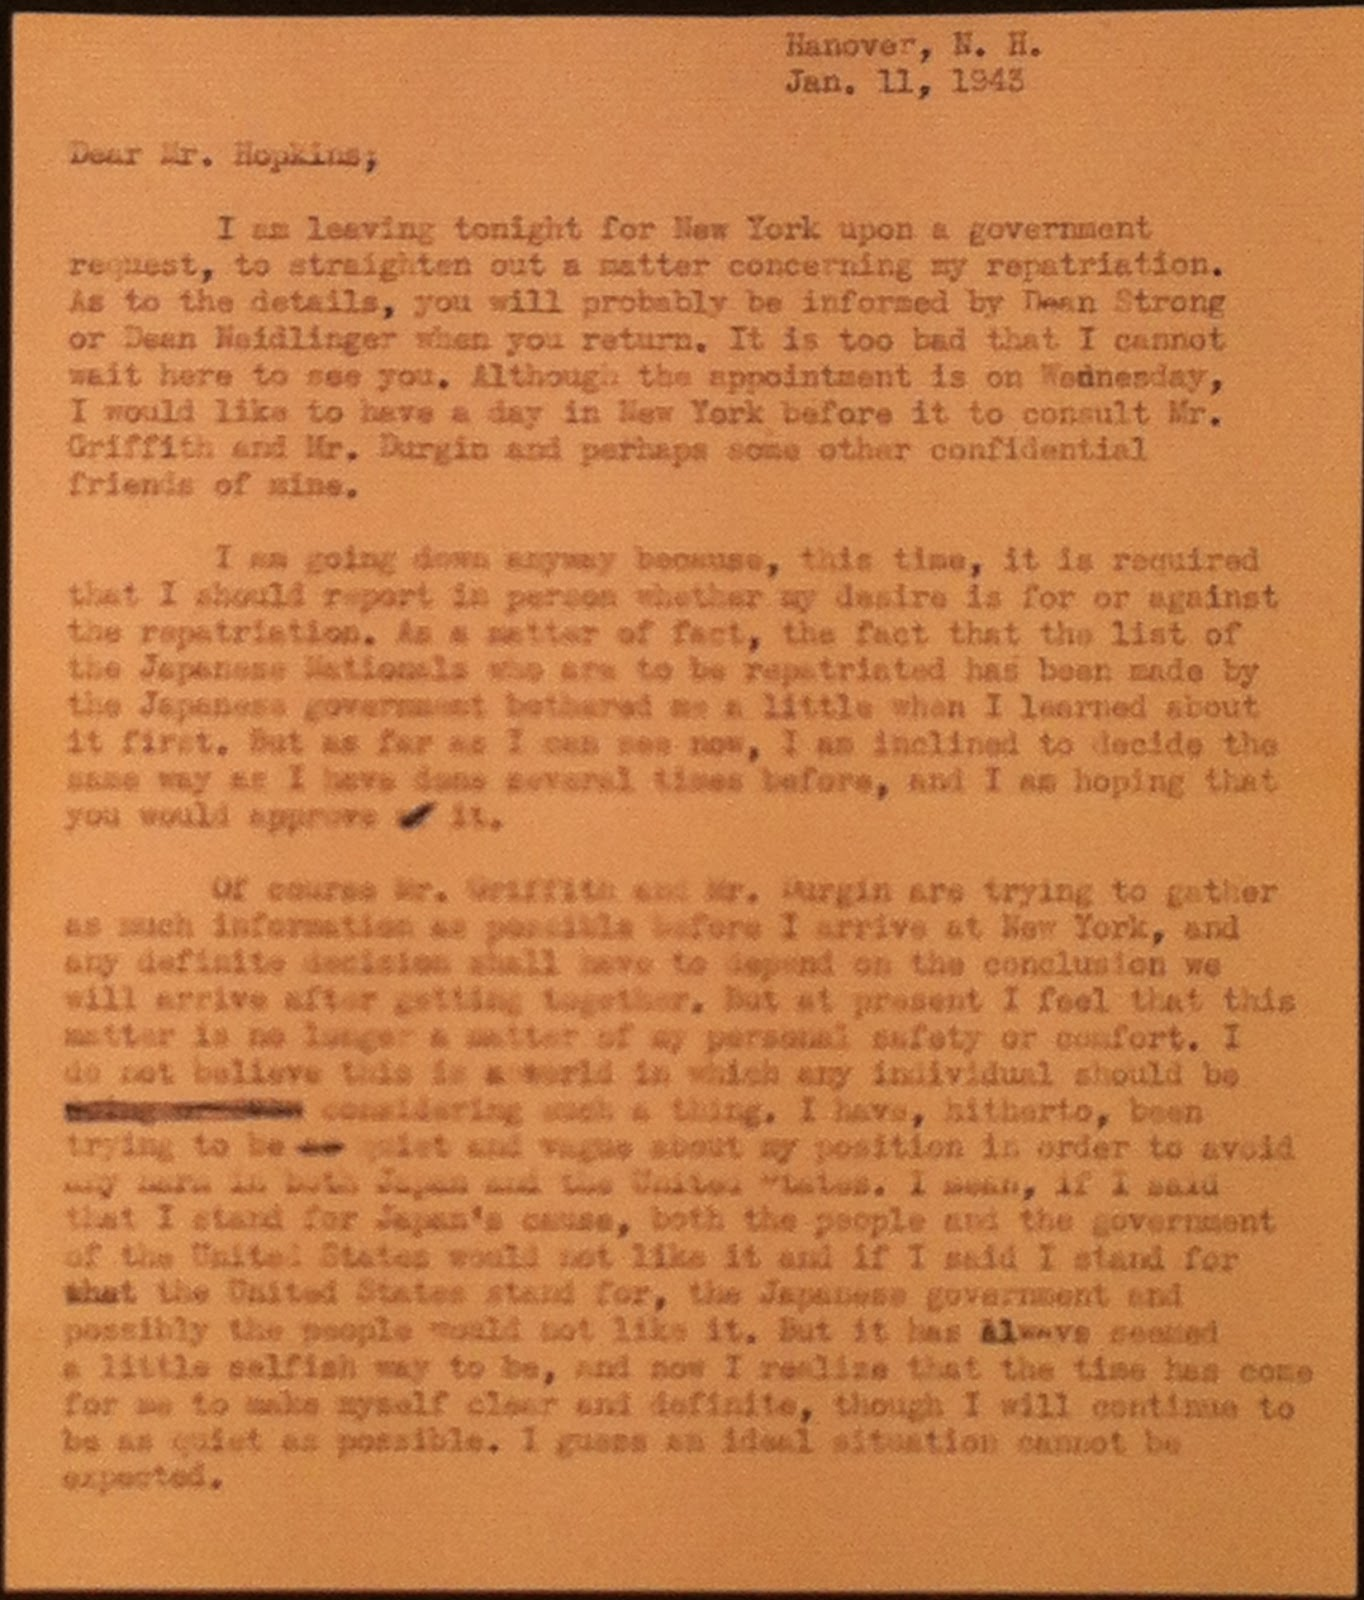 The first page of a typed letter to Hopkins.